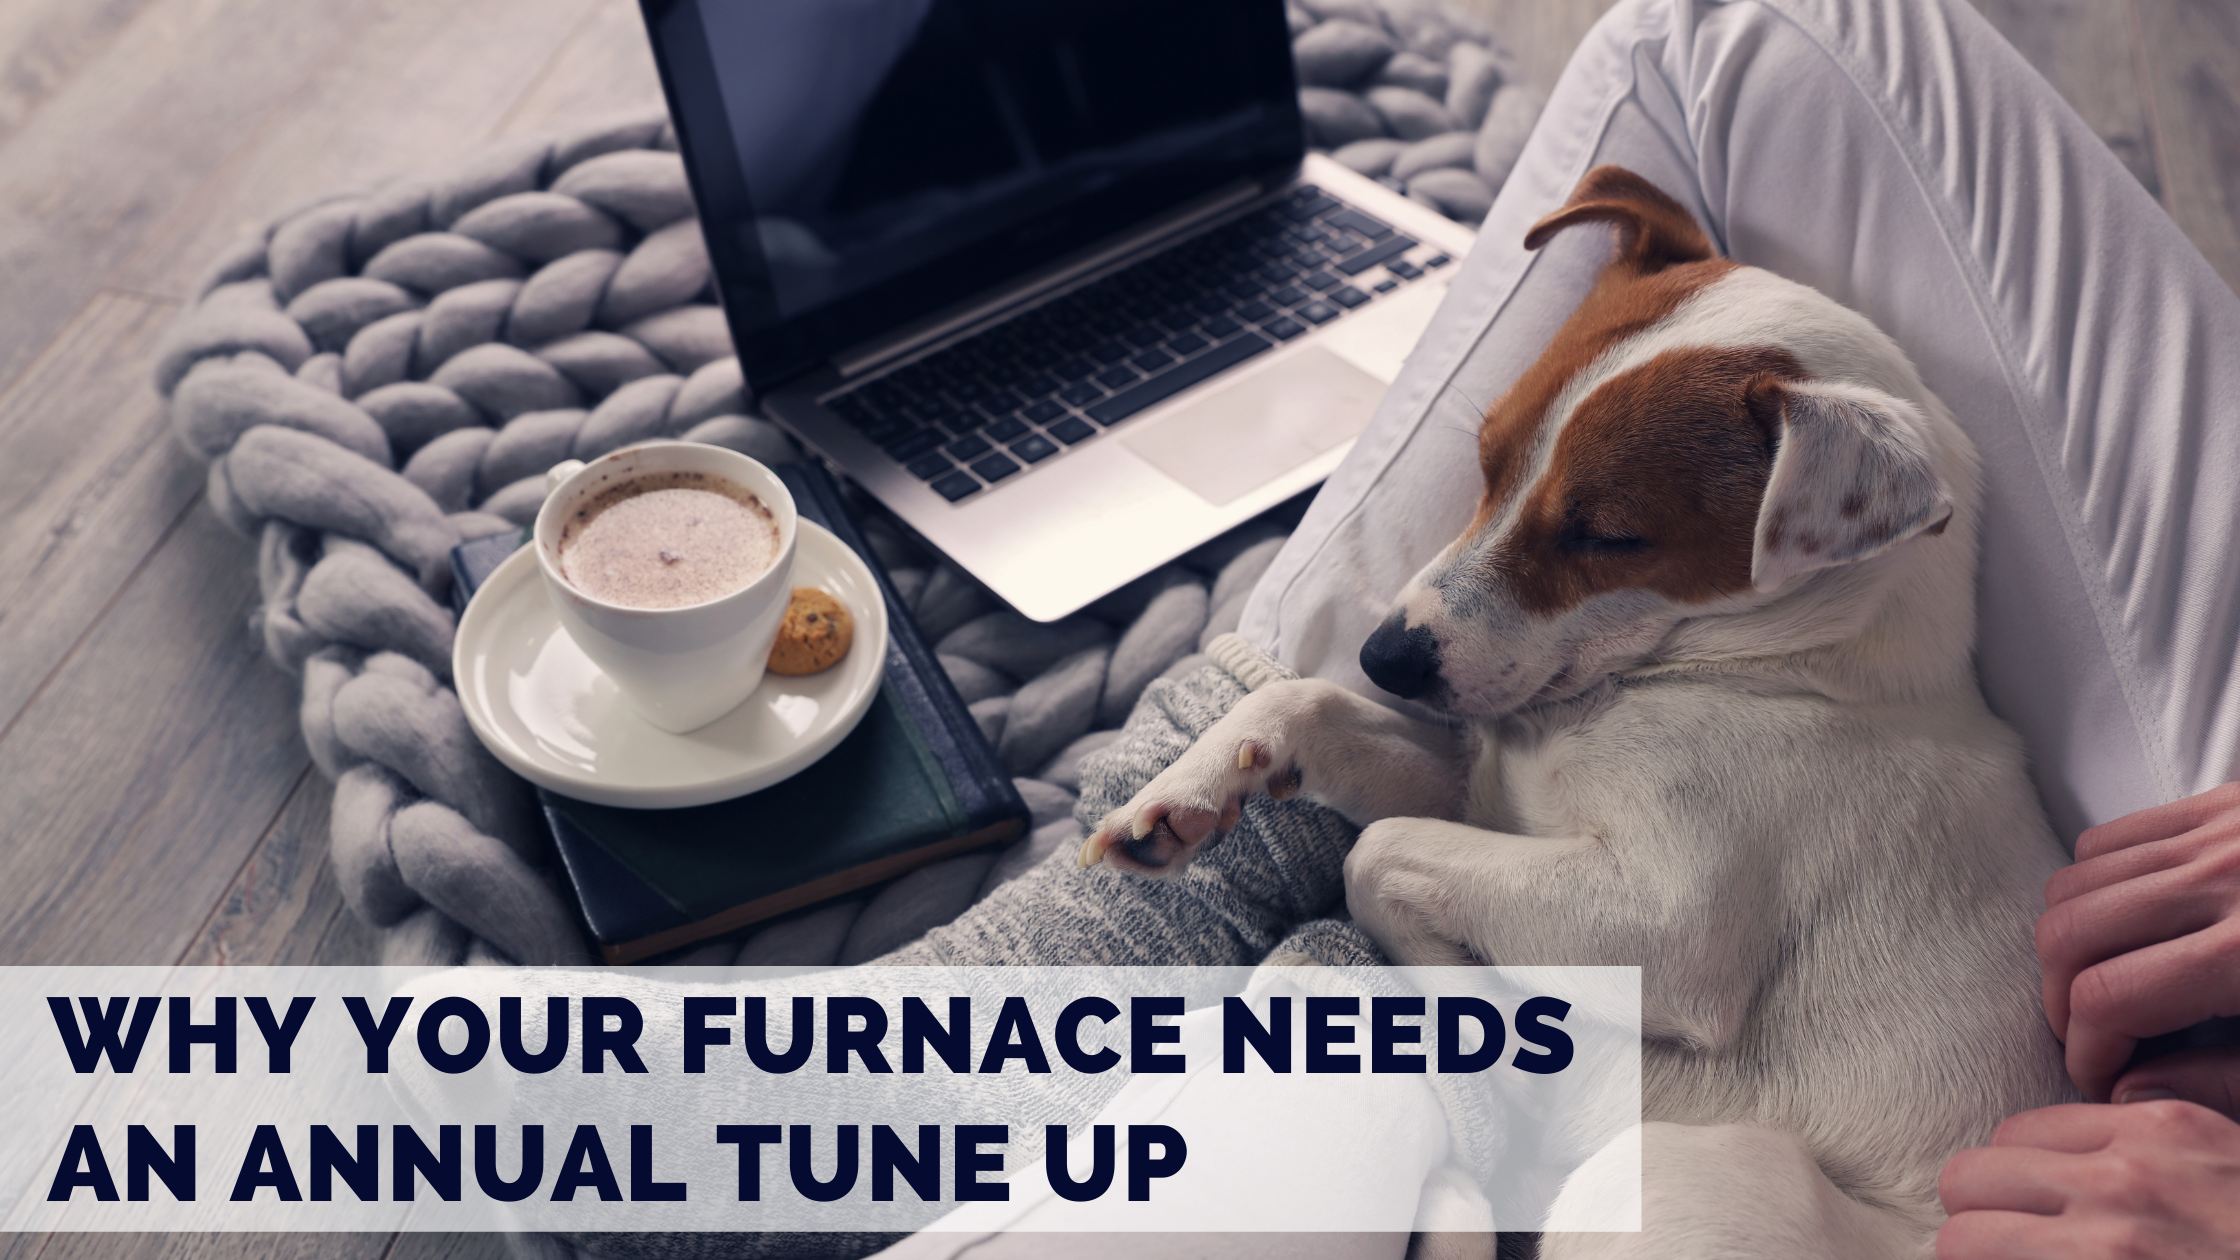 Why Your Furnace Needs an Annual Tune Up